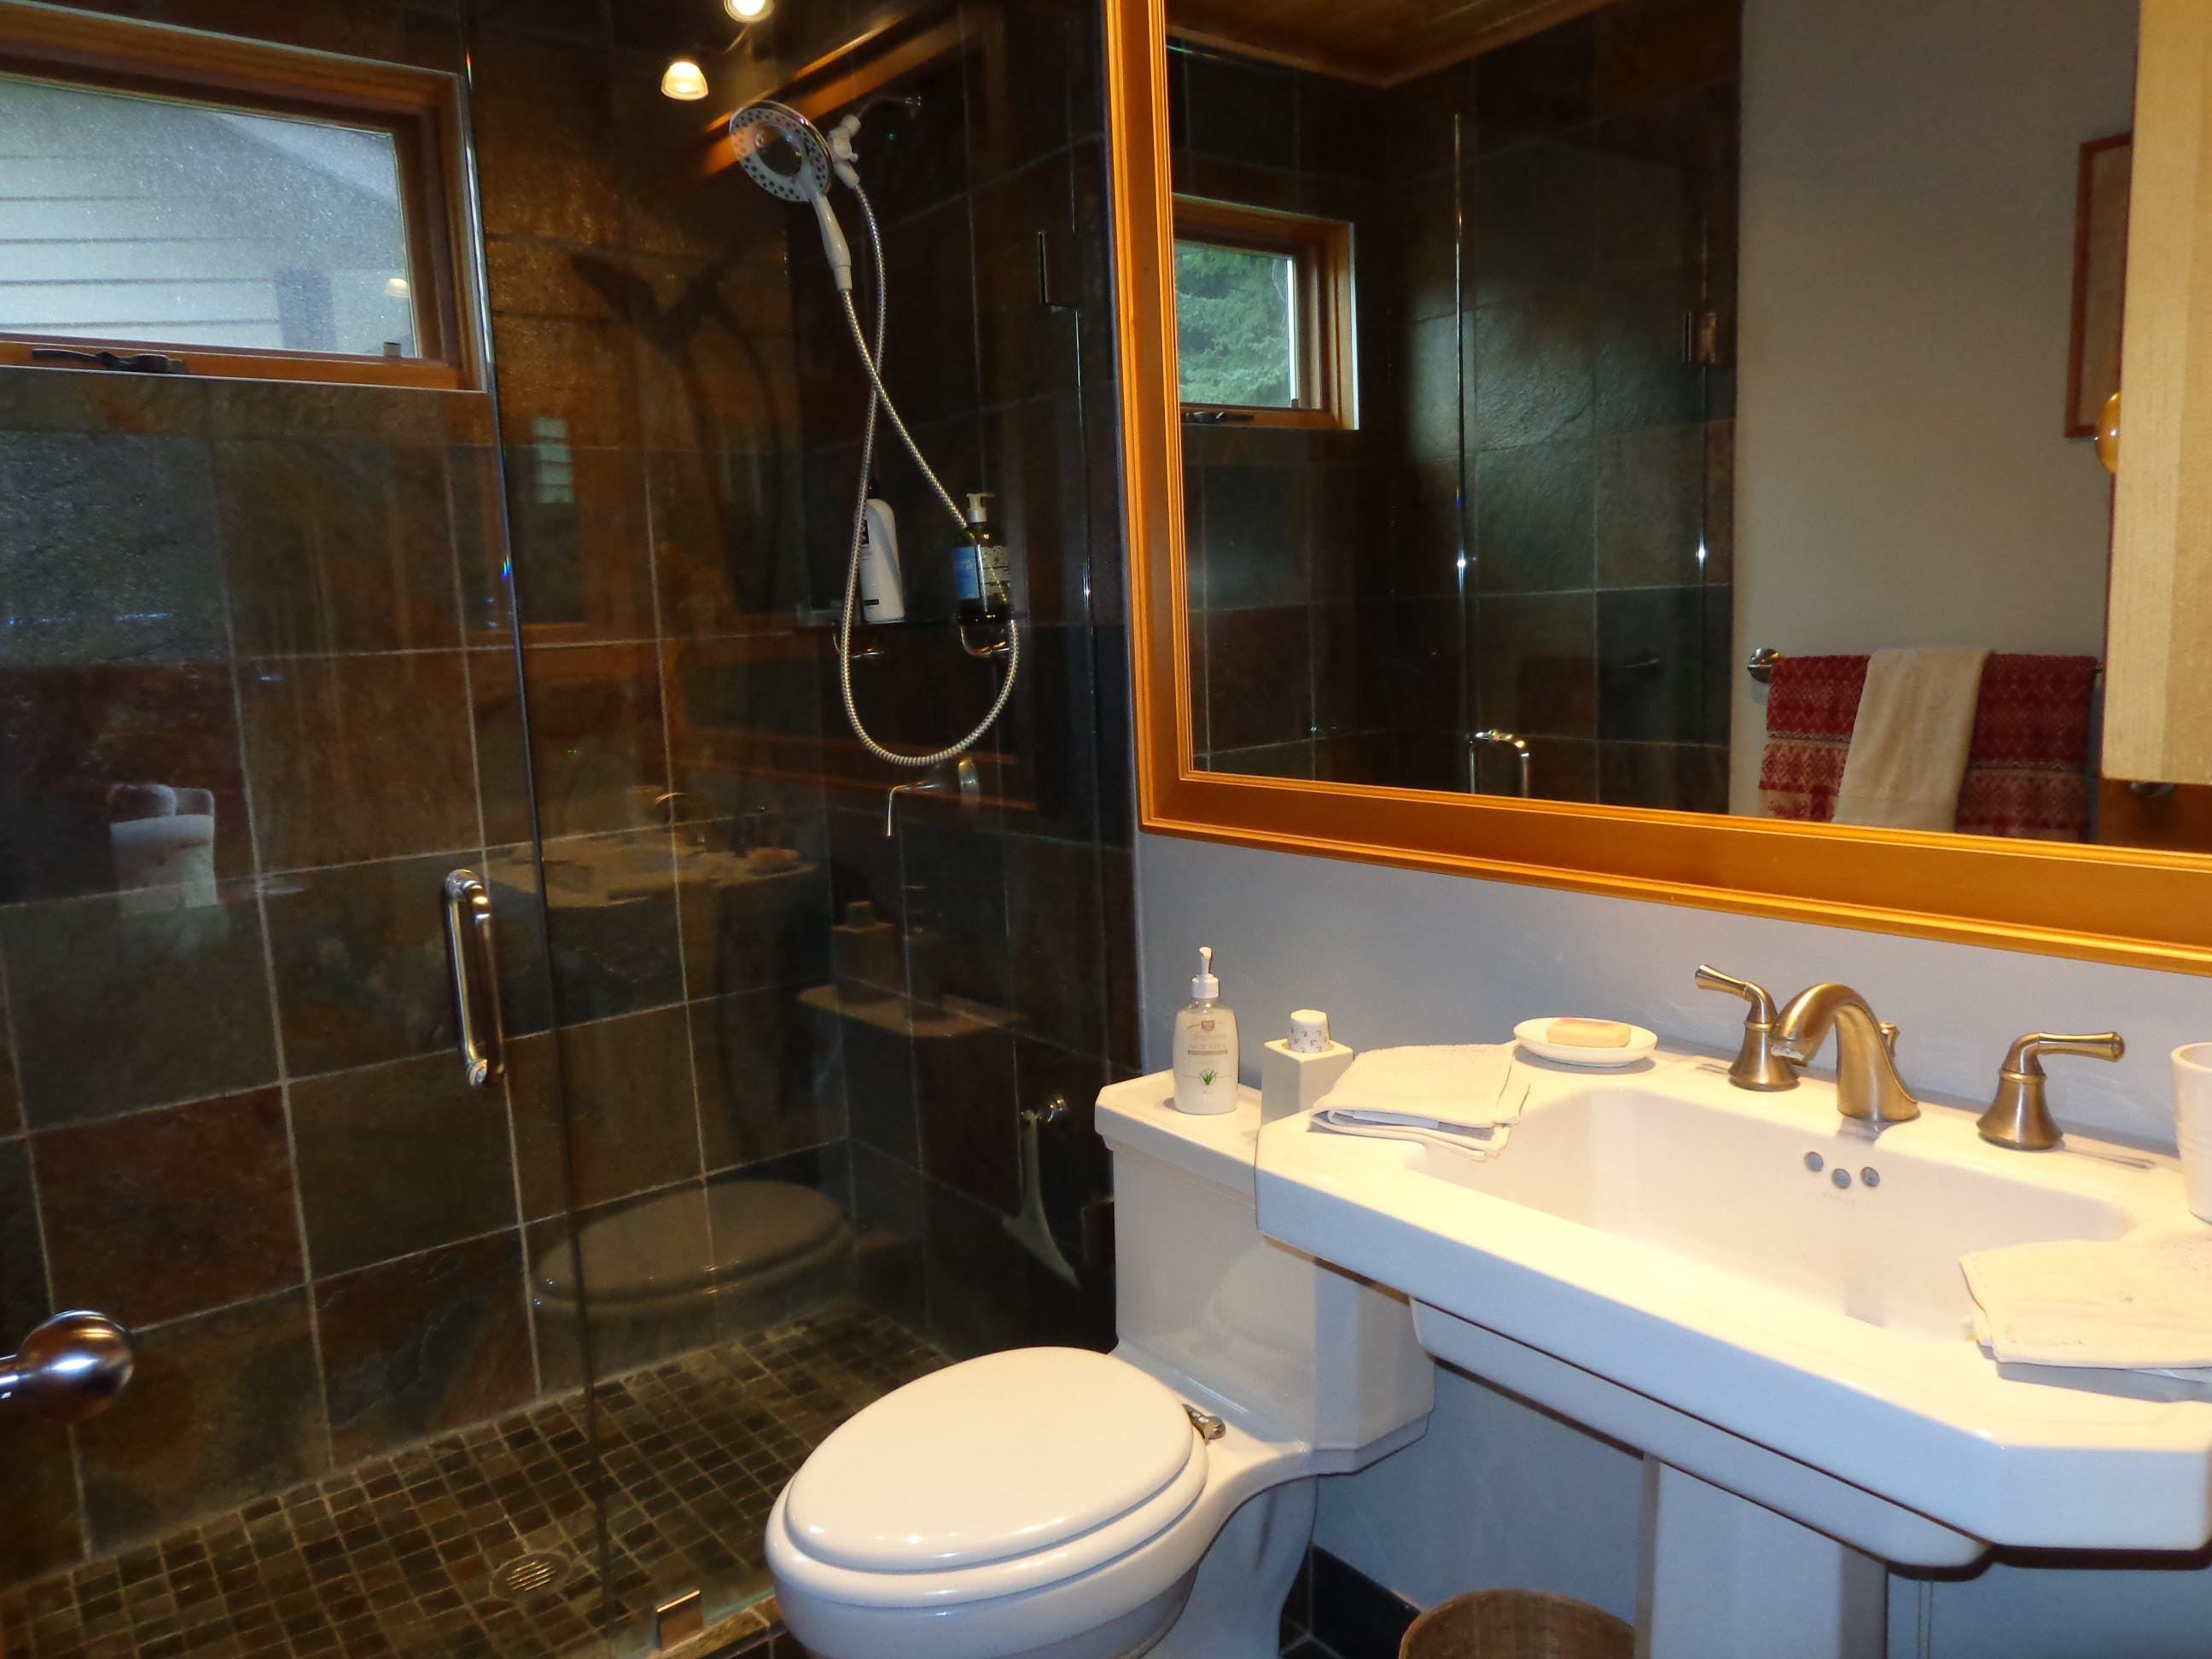 Garden View suite has stylish private bathroom with full shower